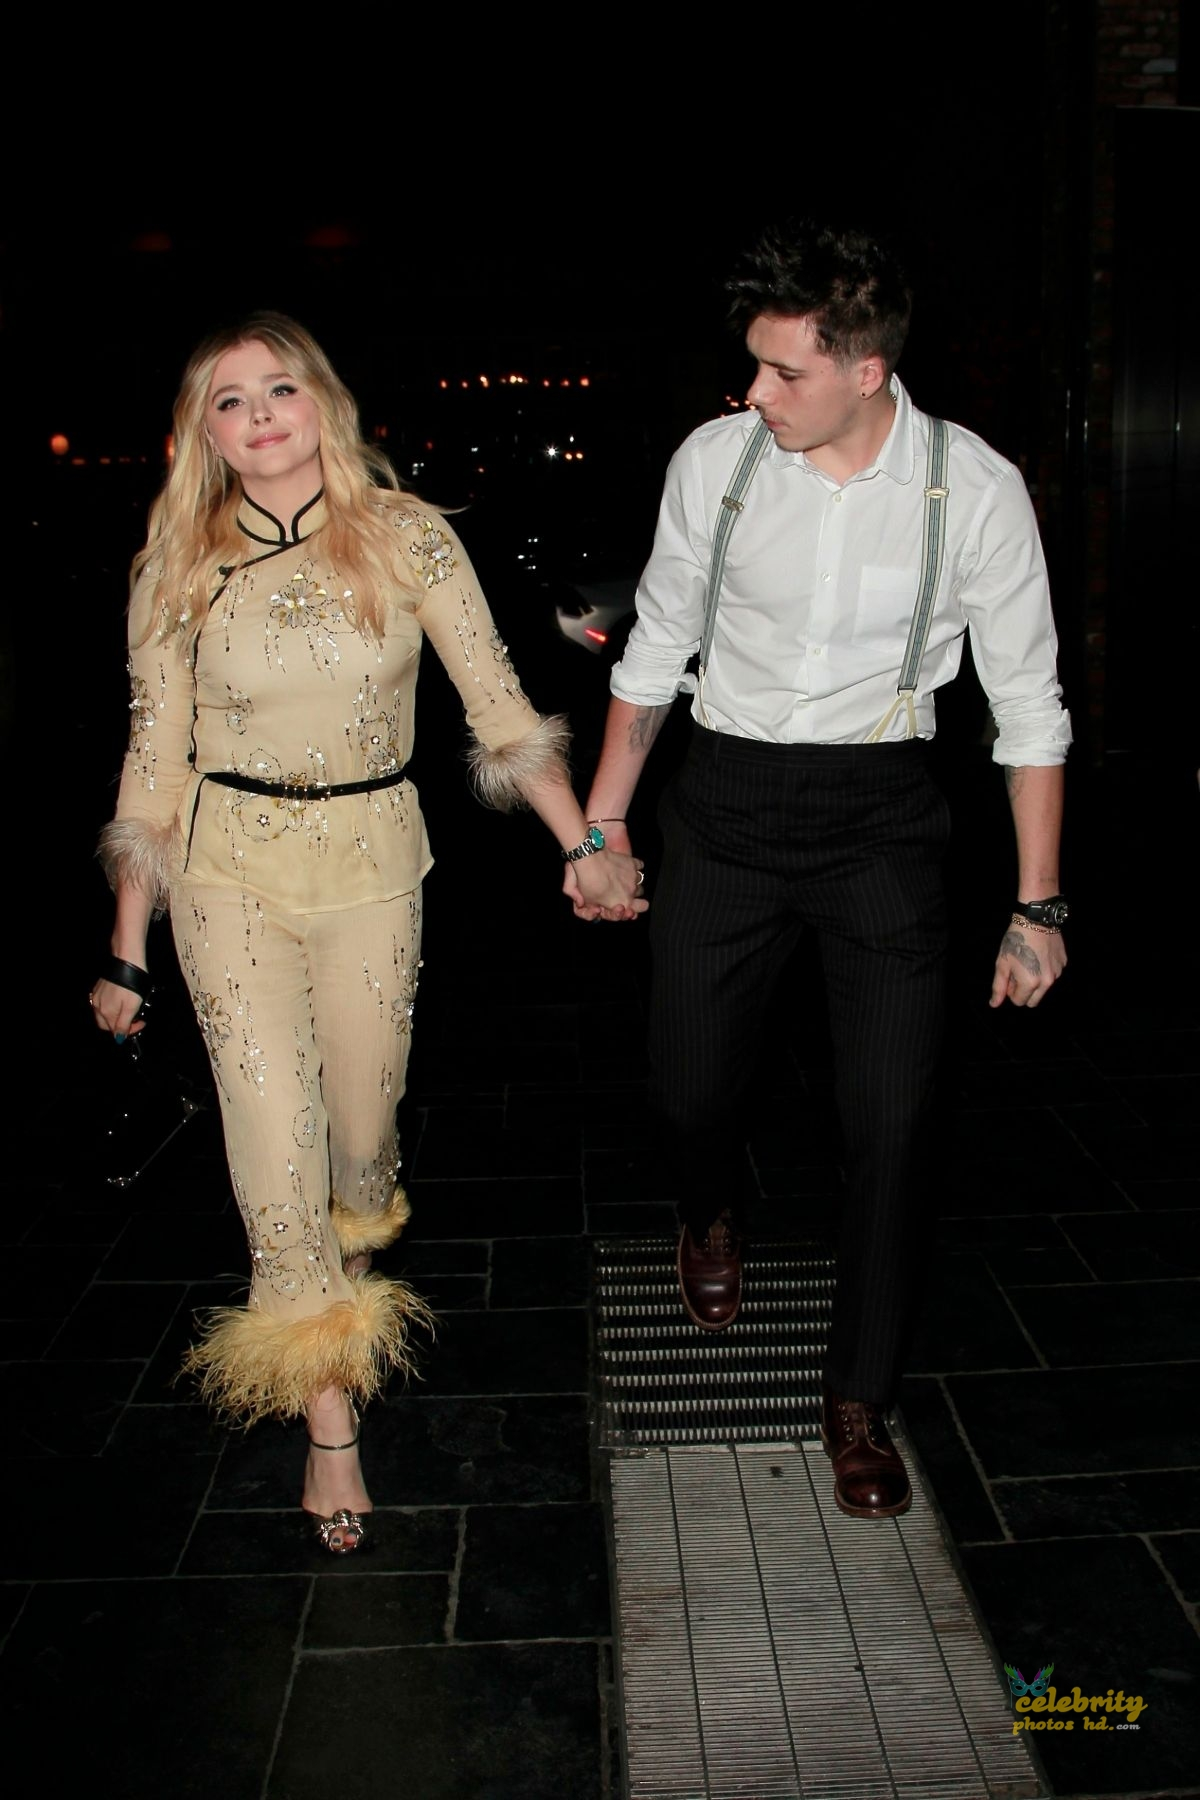 CHLOE MORETZ Celebrates Her 21st Birthday with Brooklyn Beckham in Los Angeles (4)